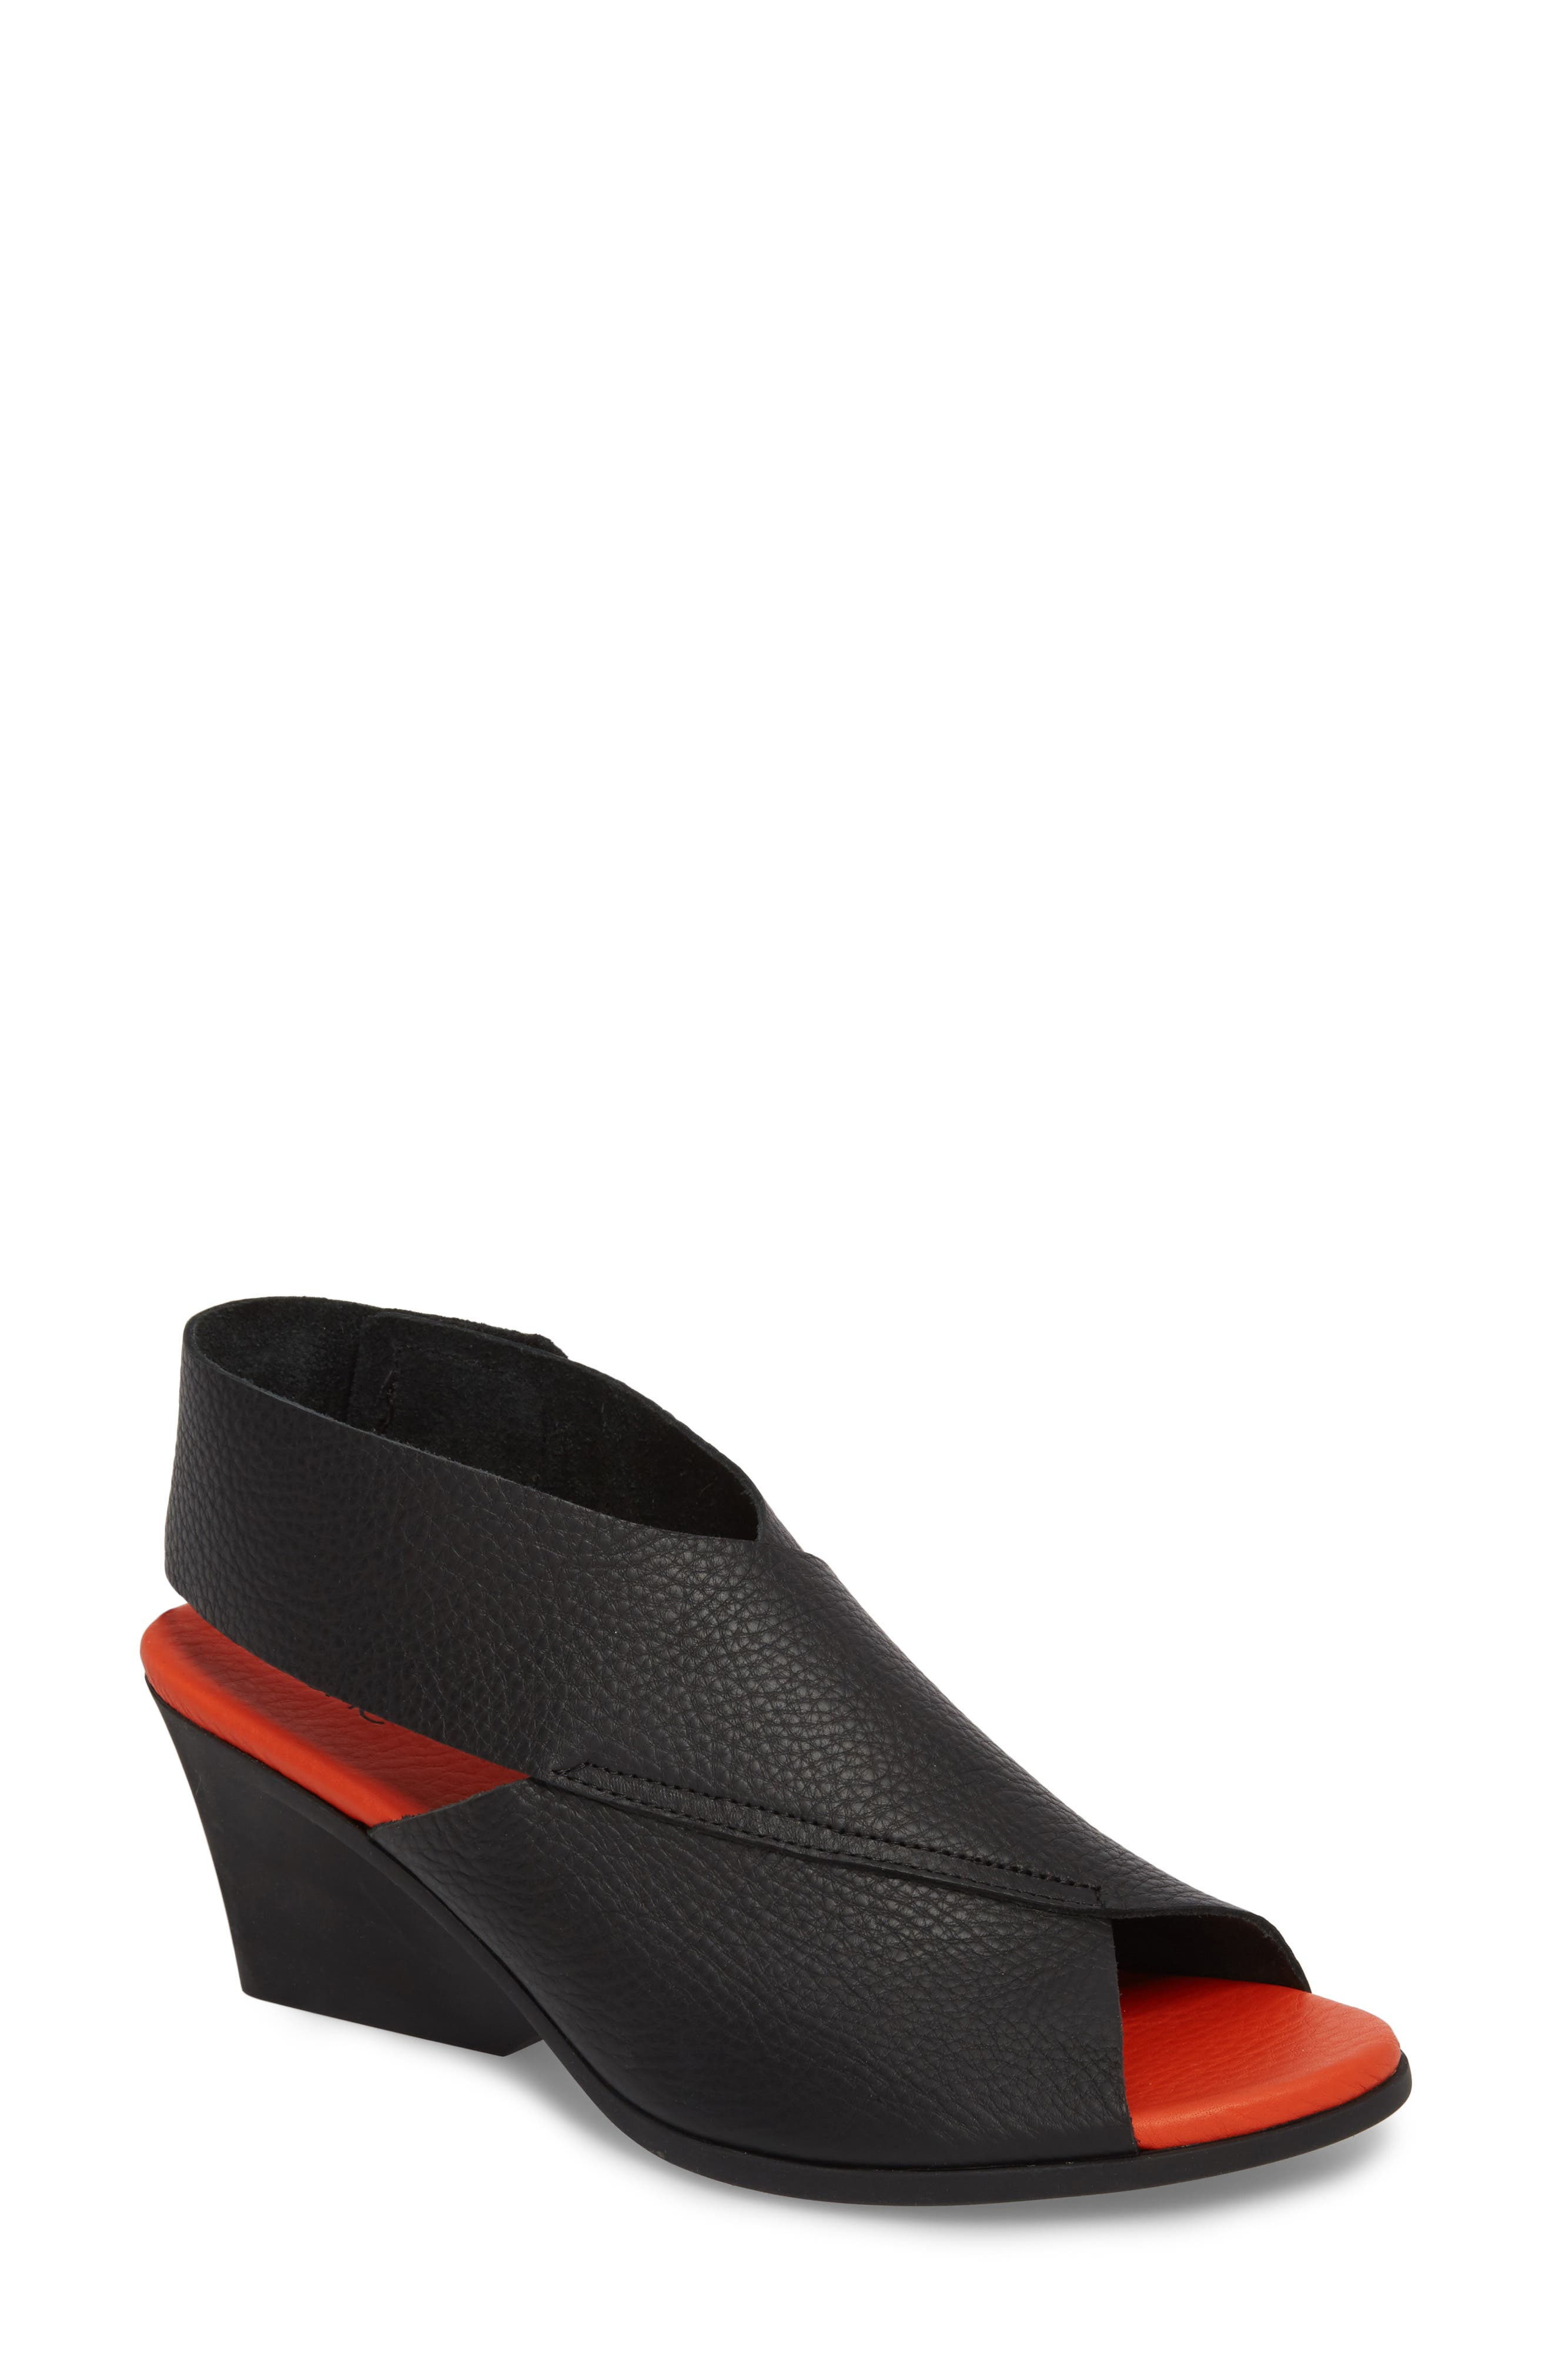 Ritual Wedge Sandal,                         Main,                         color, Noir/ Paradis Leather